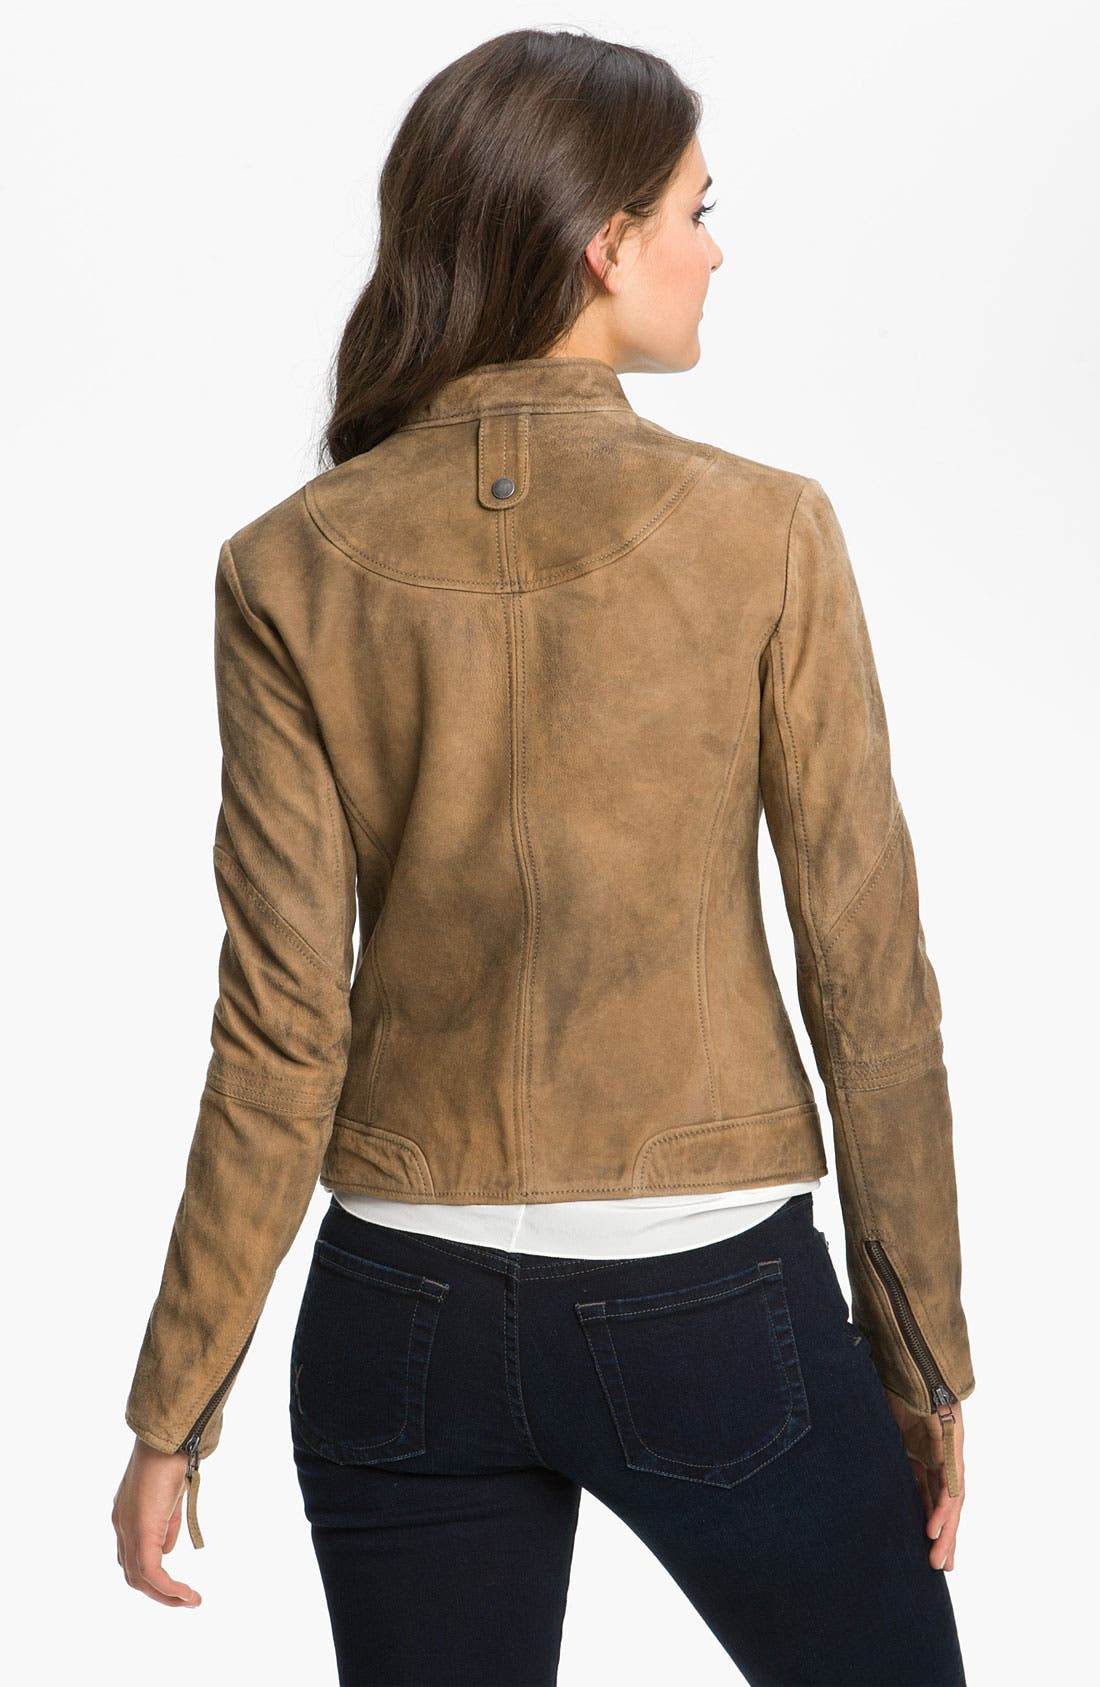 BUFFALO BY DAVID BITTON, Distressed Leather Jacket, Alternate thumbnail 2, color, 250